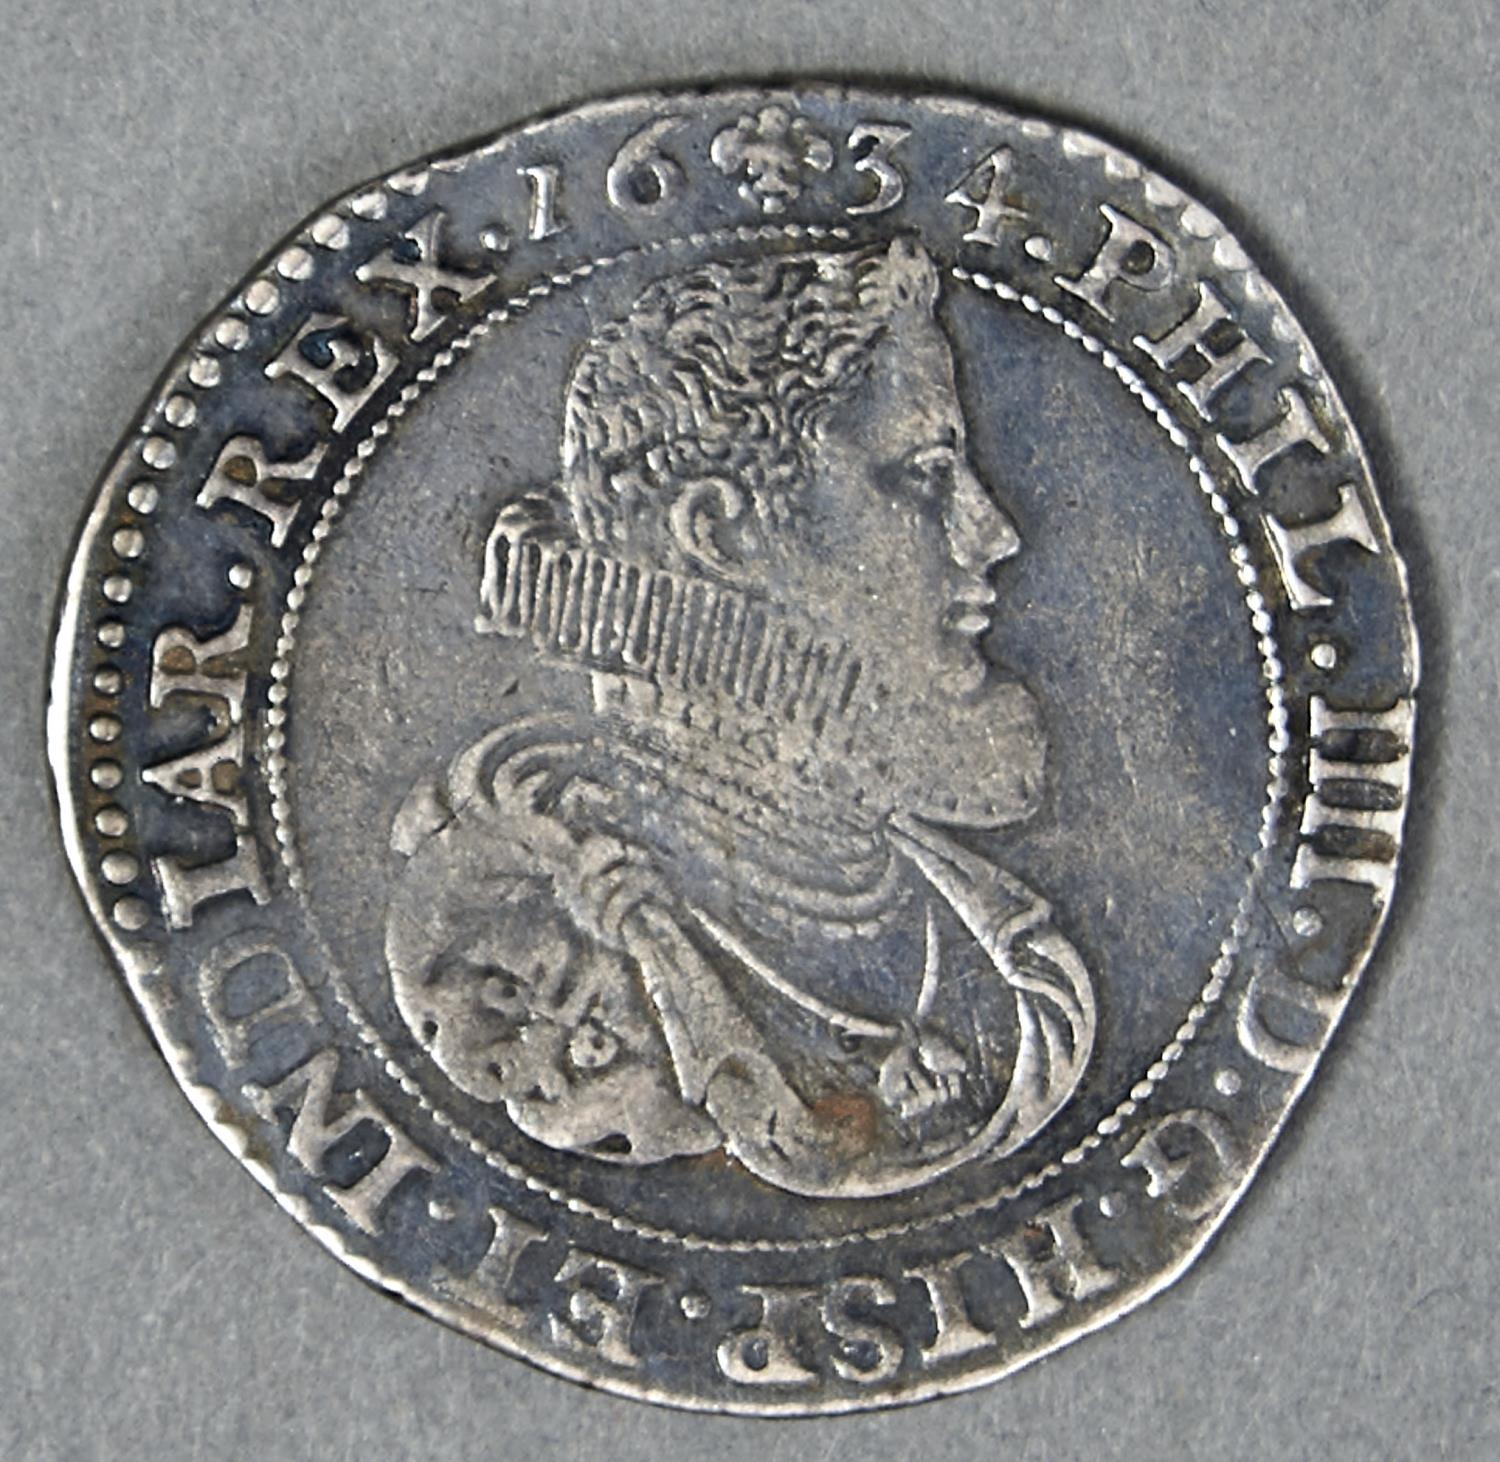 SPANISH NETHERLANDS, BRABANT, PHILIP IV, DUCATON, 1634, POSSIBLY A WRECK FIND, FINE+, WITH A BOLD